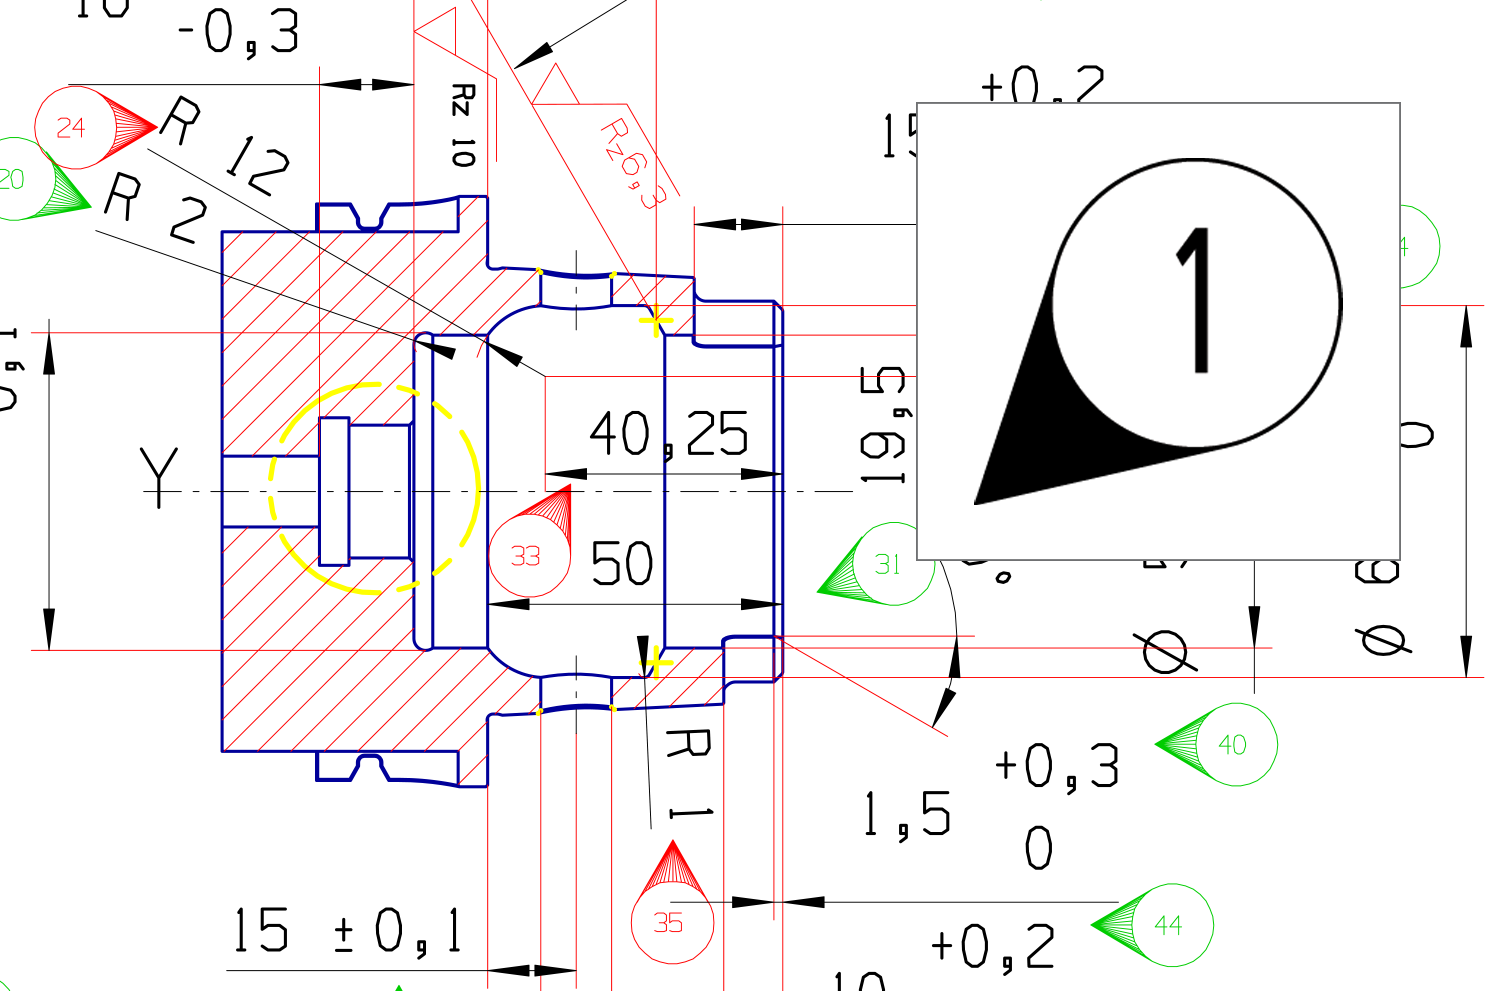 pruefplan-neutralformate-screenshot